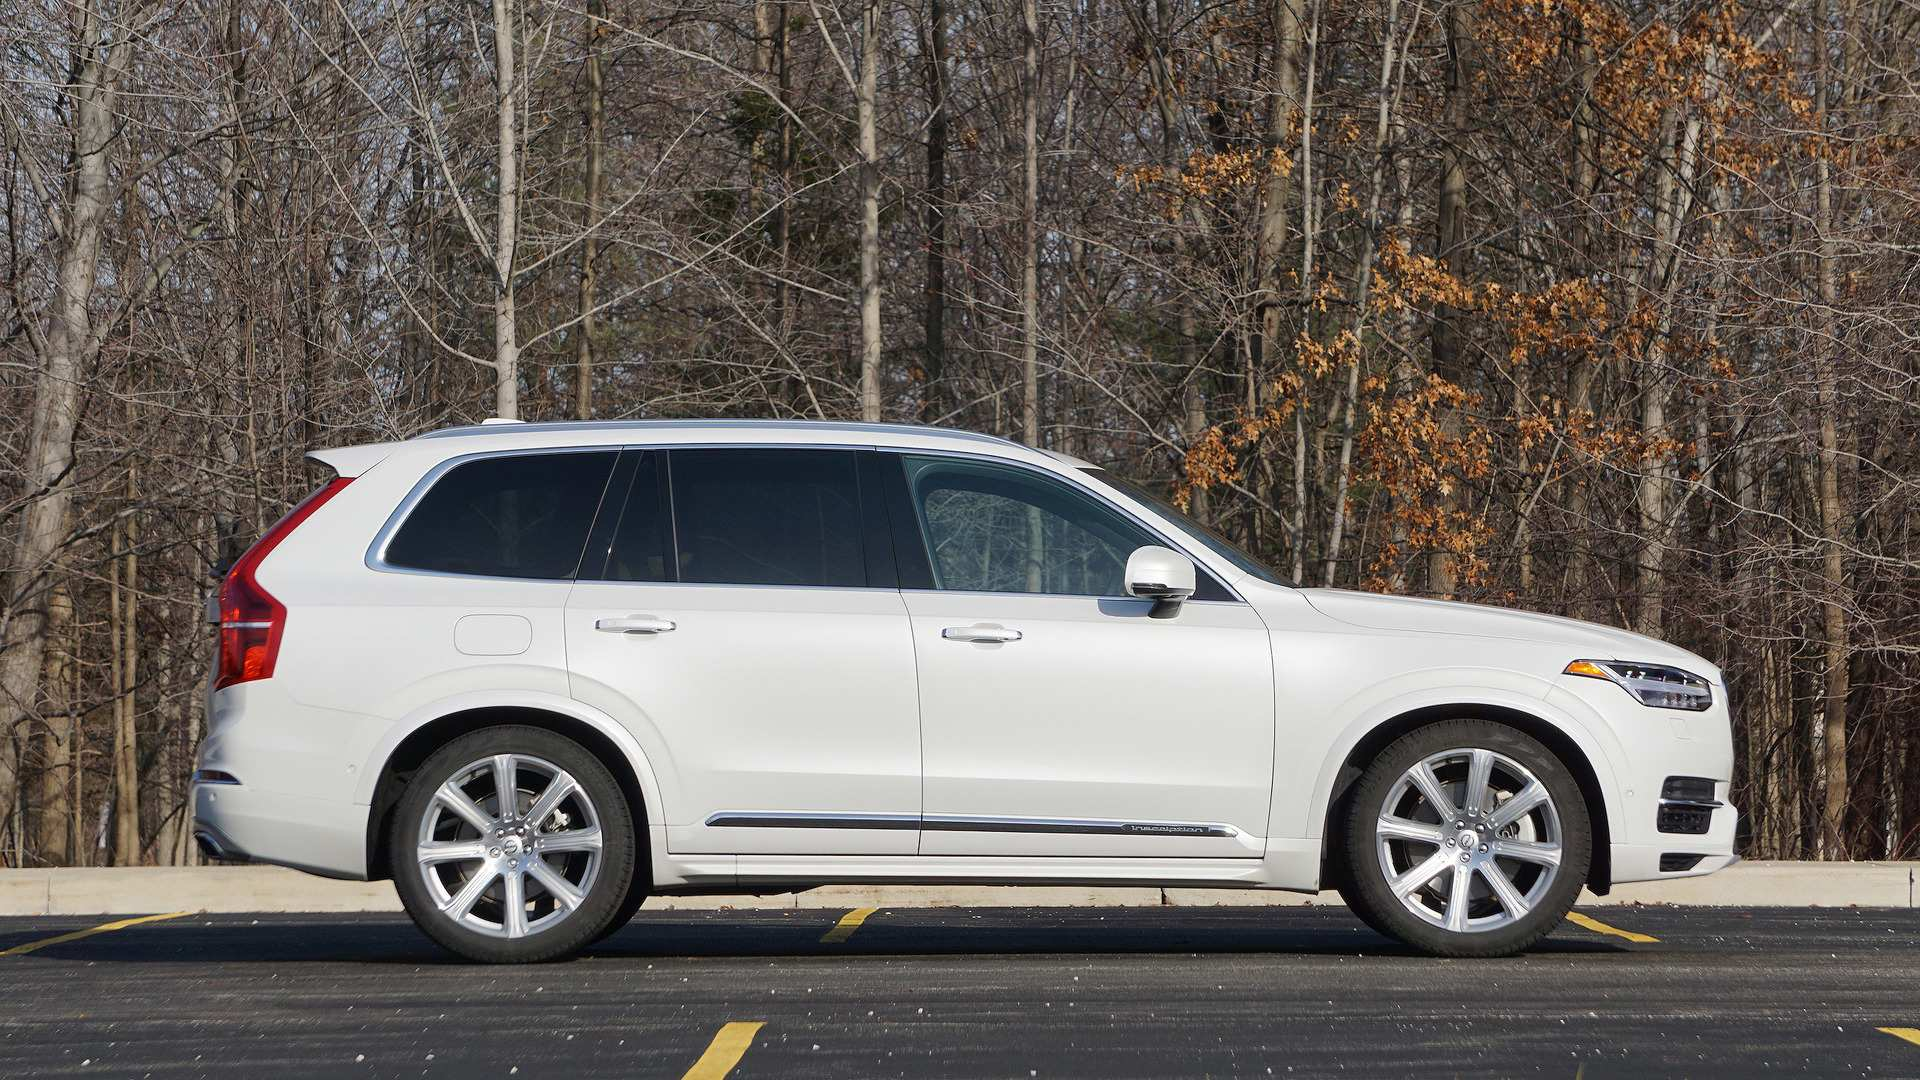 89 New Build 2020 Volvo Xc90 Configurations